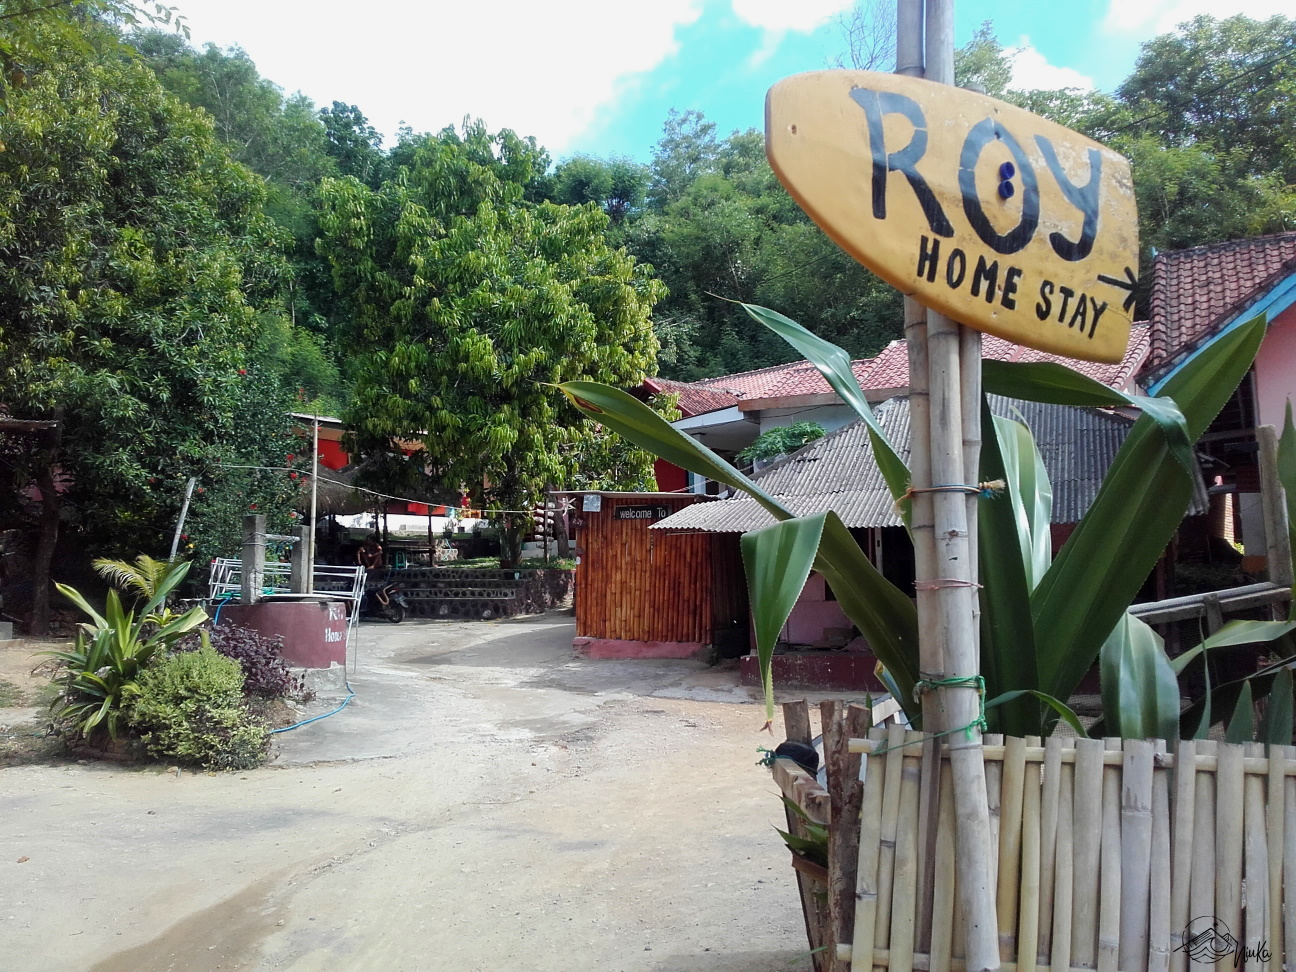 Our second accomodation - Roy Homestay